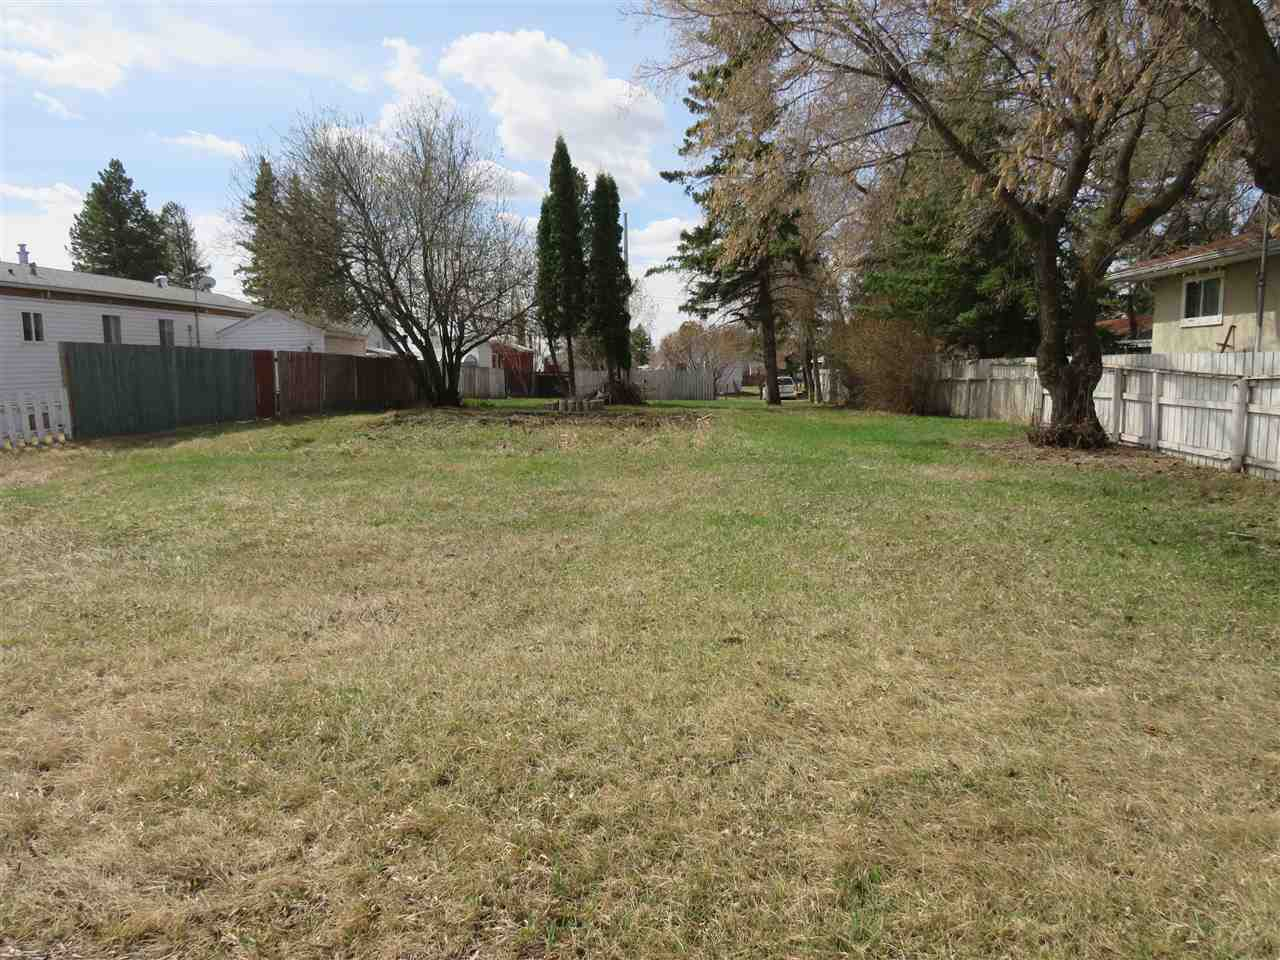 Nice clean 7000 sq ft residential bare lot zoned R2 and ready for development. Situated in a nice quiet family neighborhood with a north central location within the Village of Ryley.